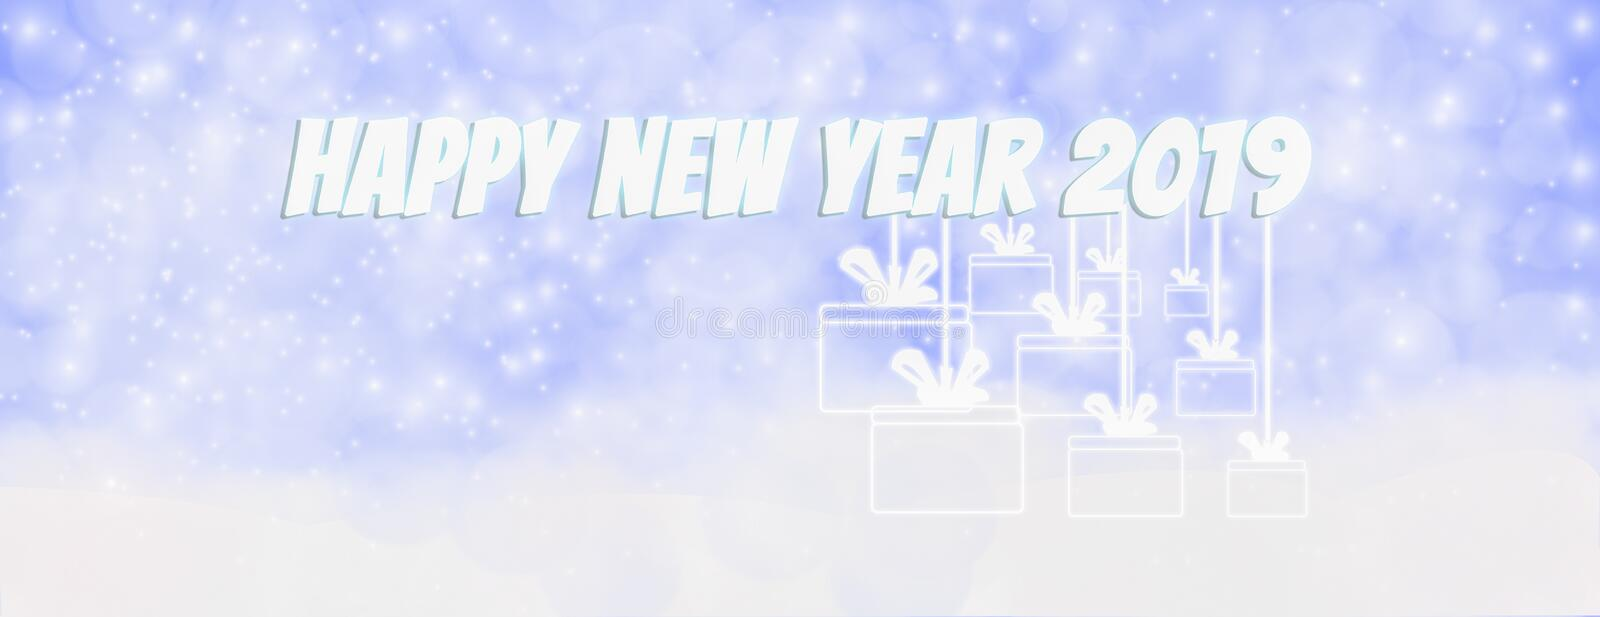 Happy new year winter outdoor with falling snowflakes, and hanging gift box,Panoramic web banner horizontal, with snow background stock illustration